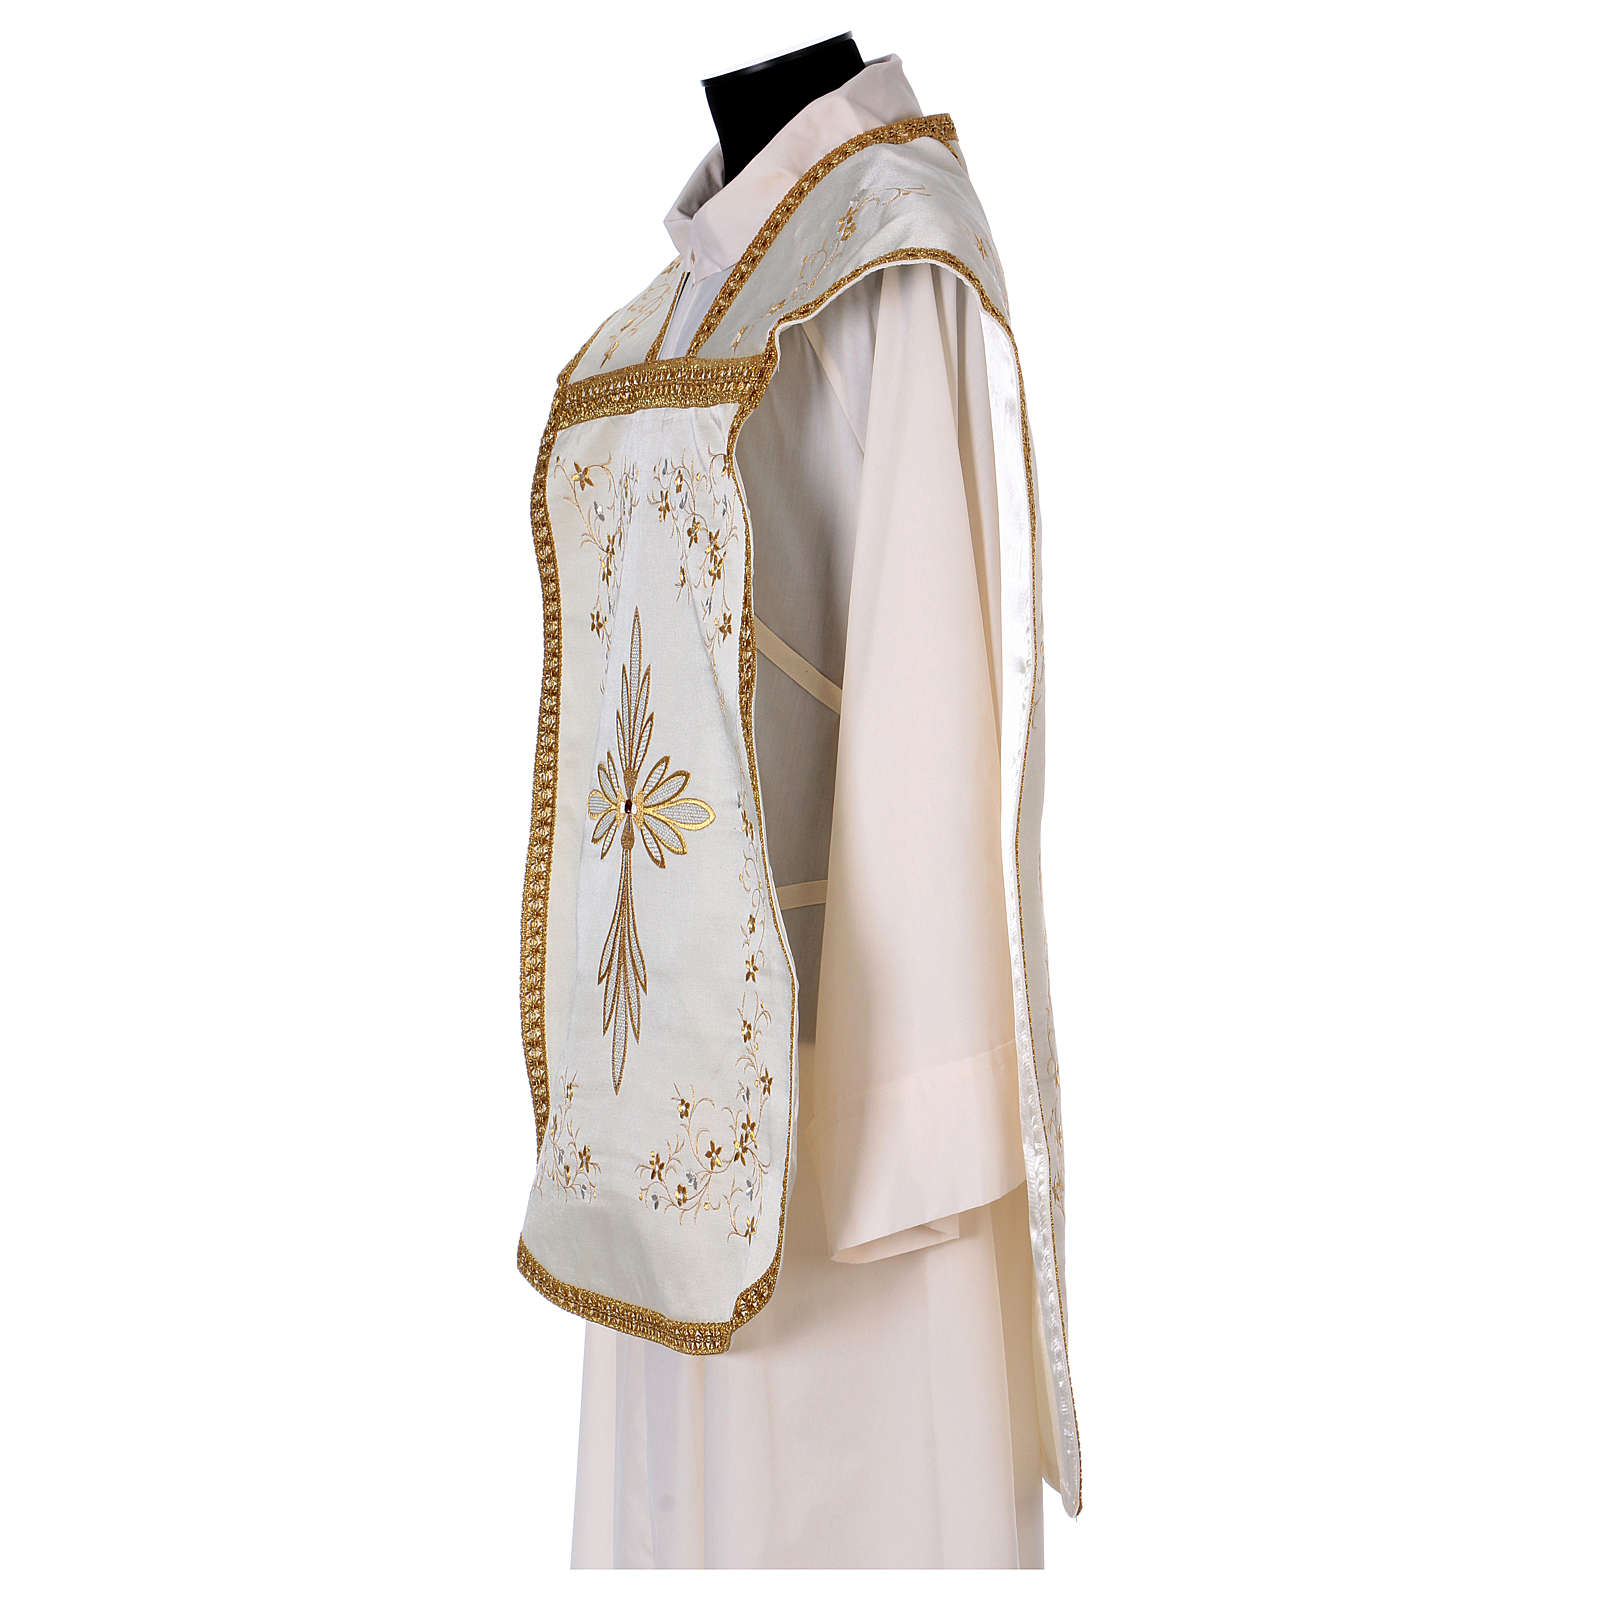 Embroidered Fiddleback Chasuble 4